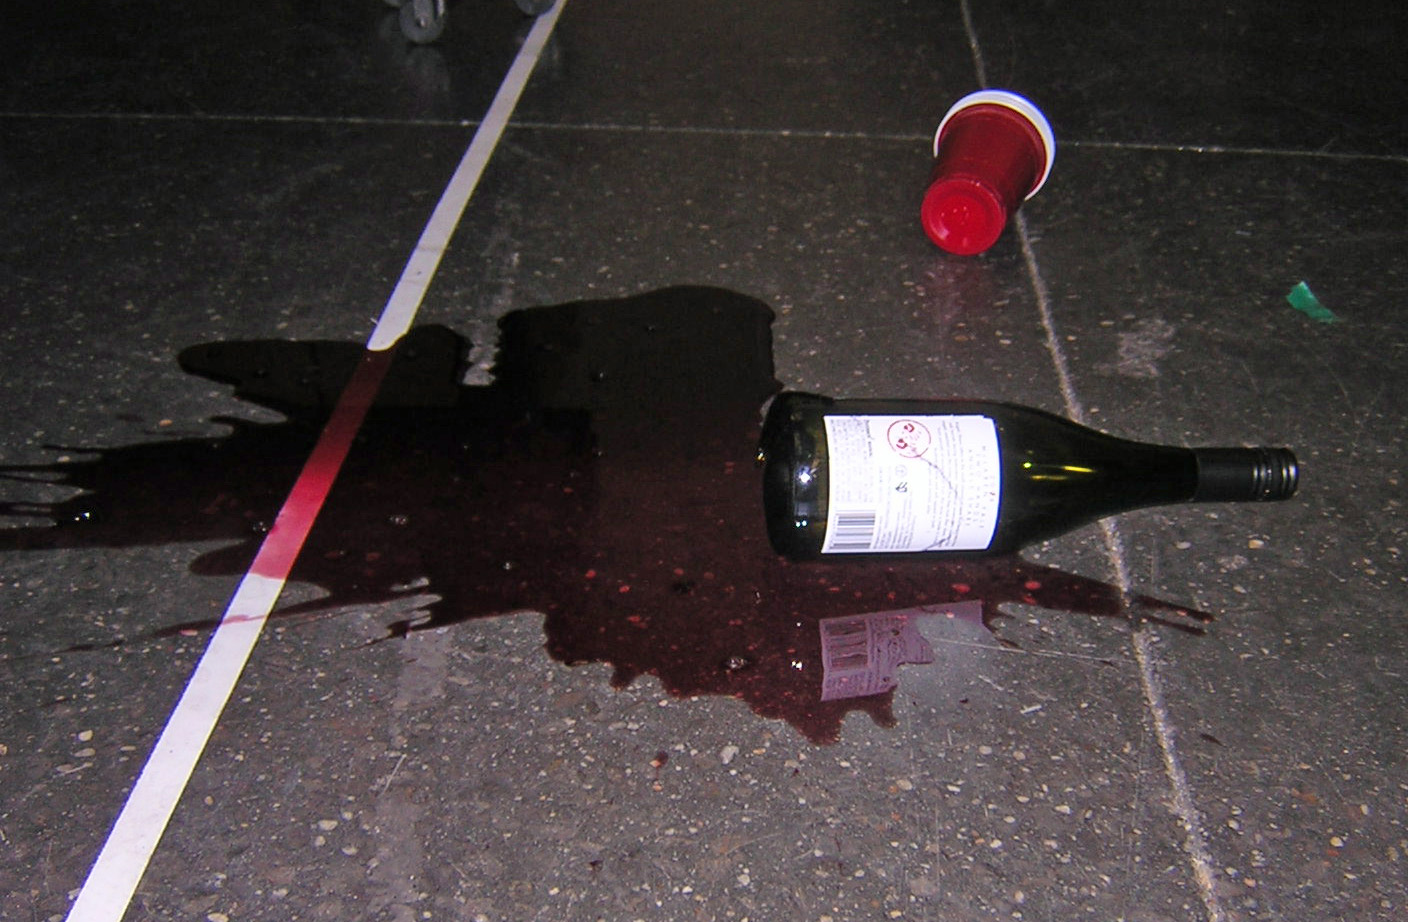 No use whining over spilled wine